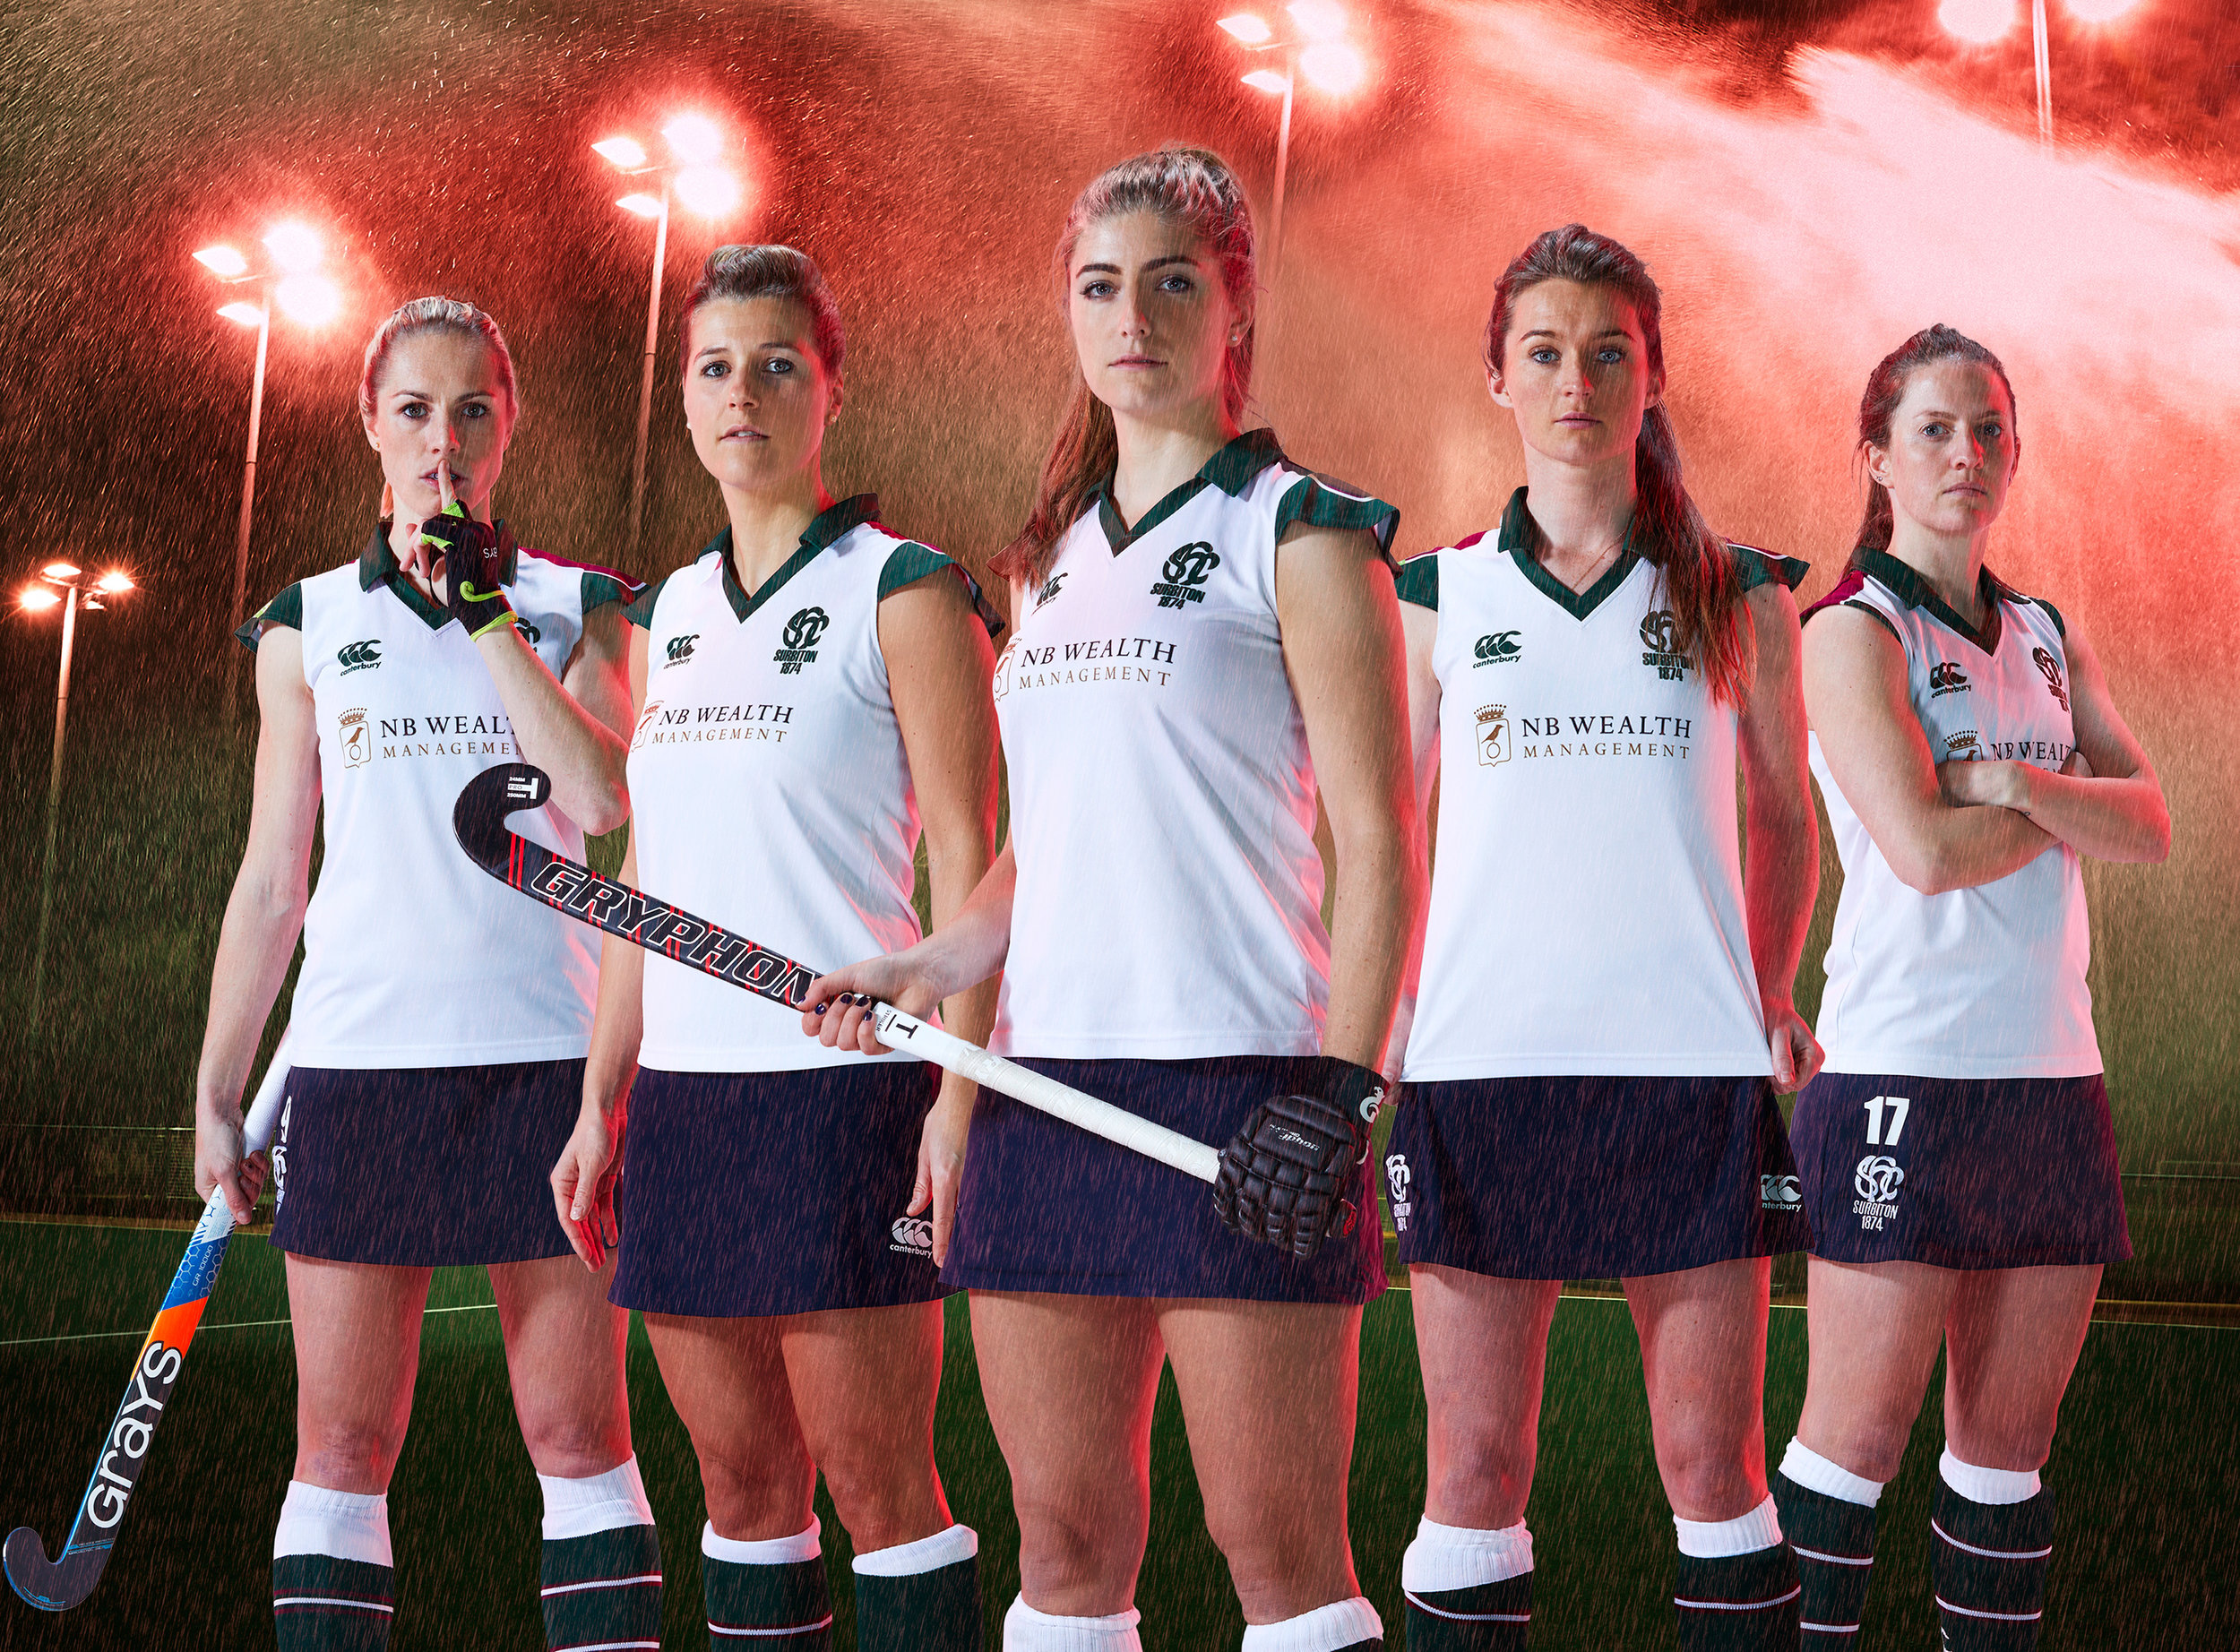 Sports & Fitness Portraits of Surbiton Hockey Club Women's